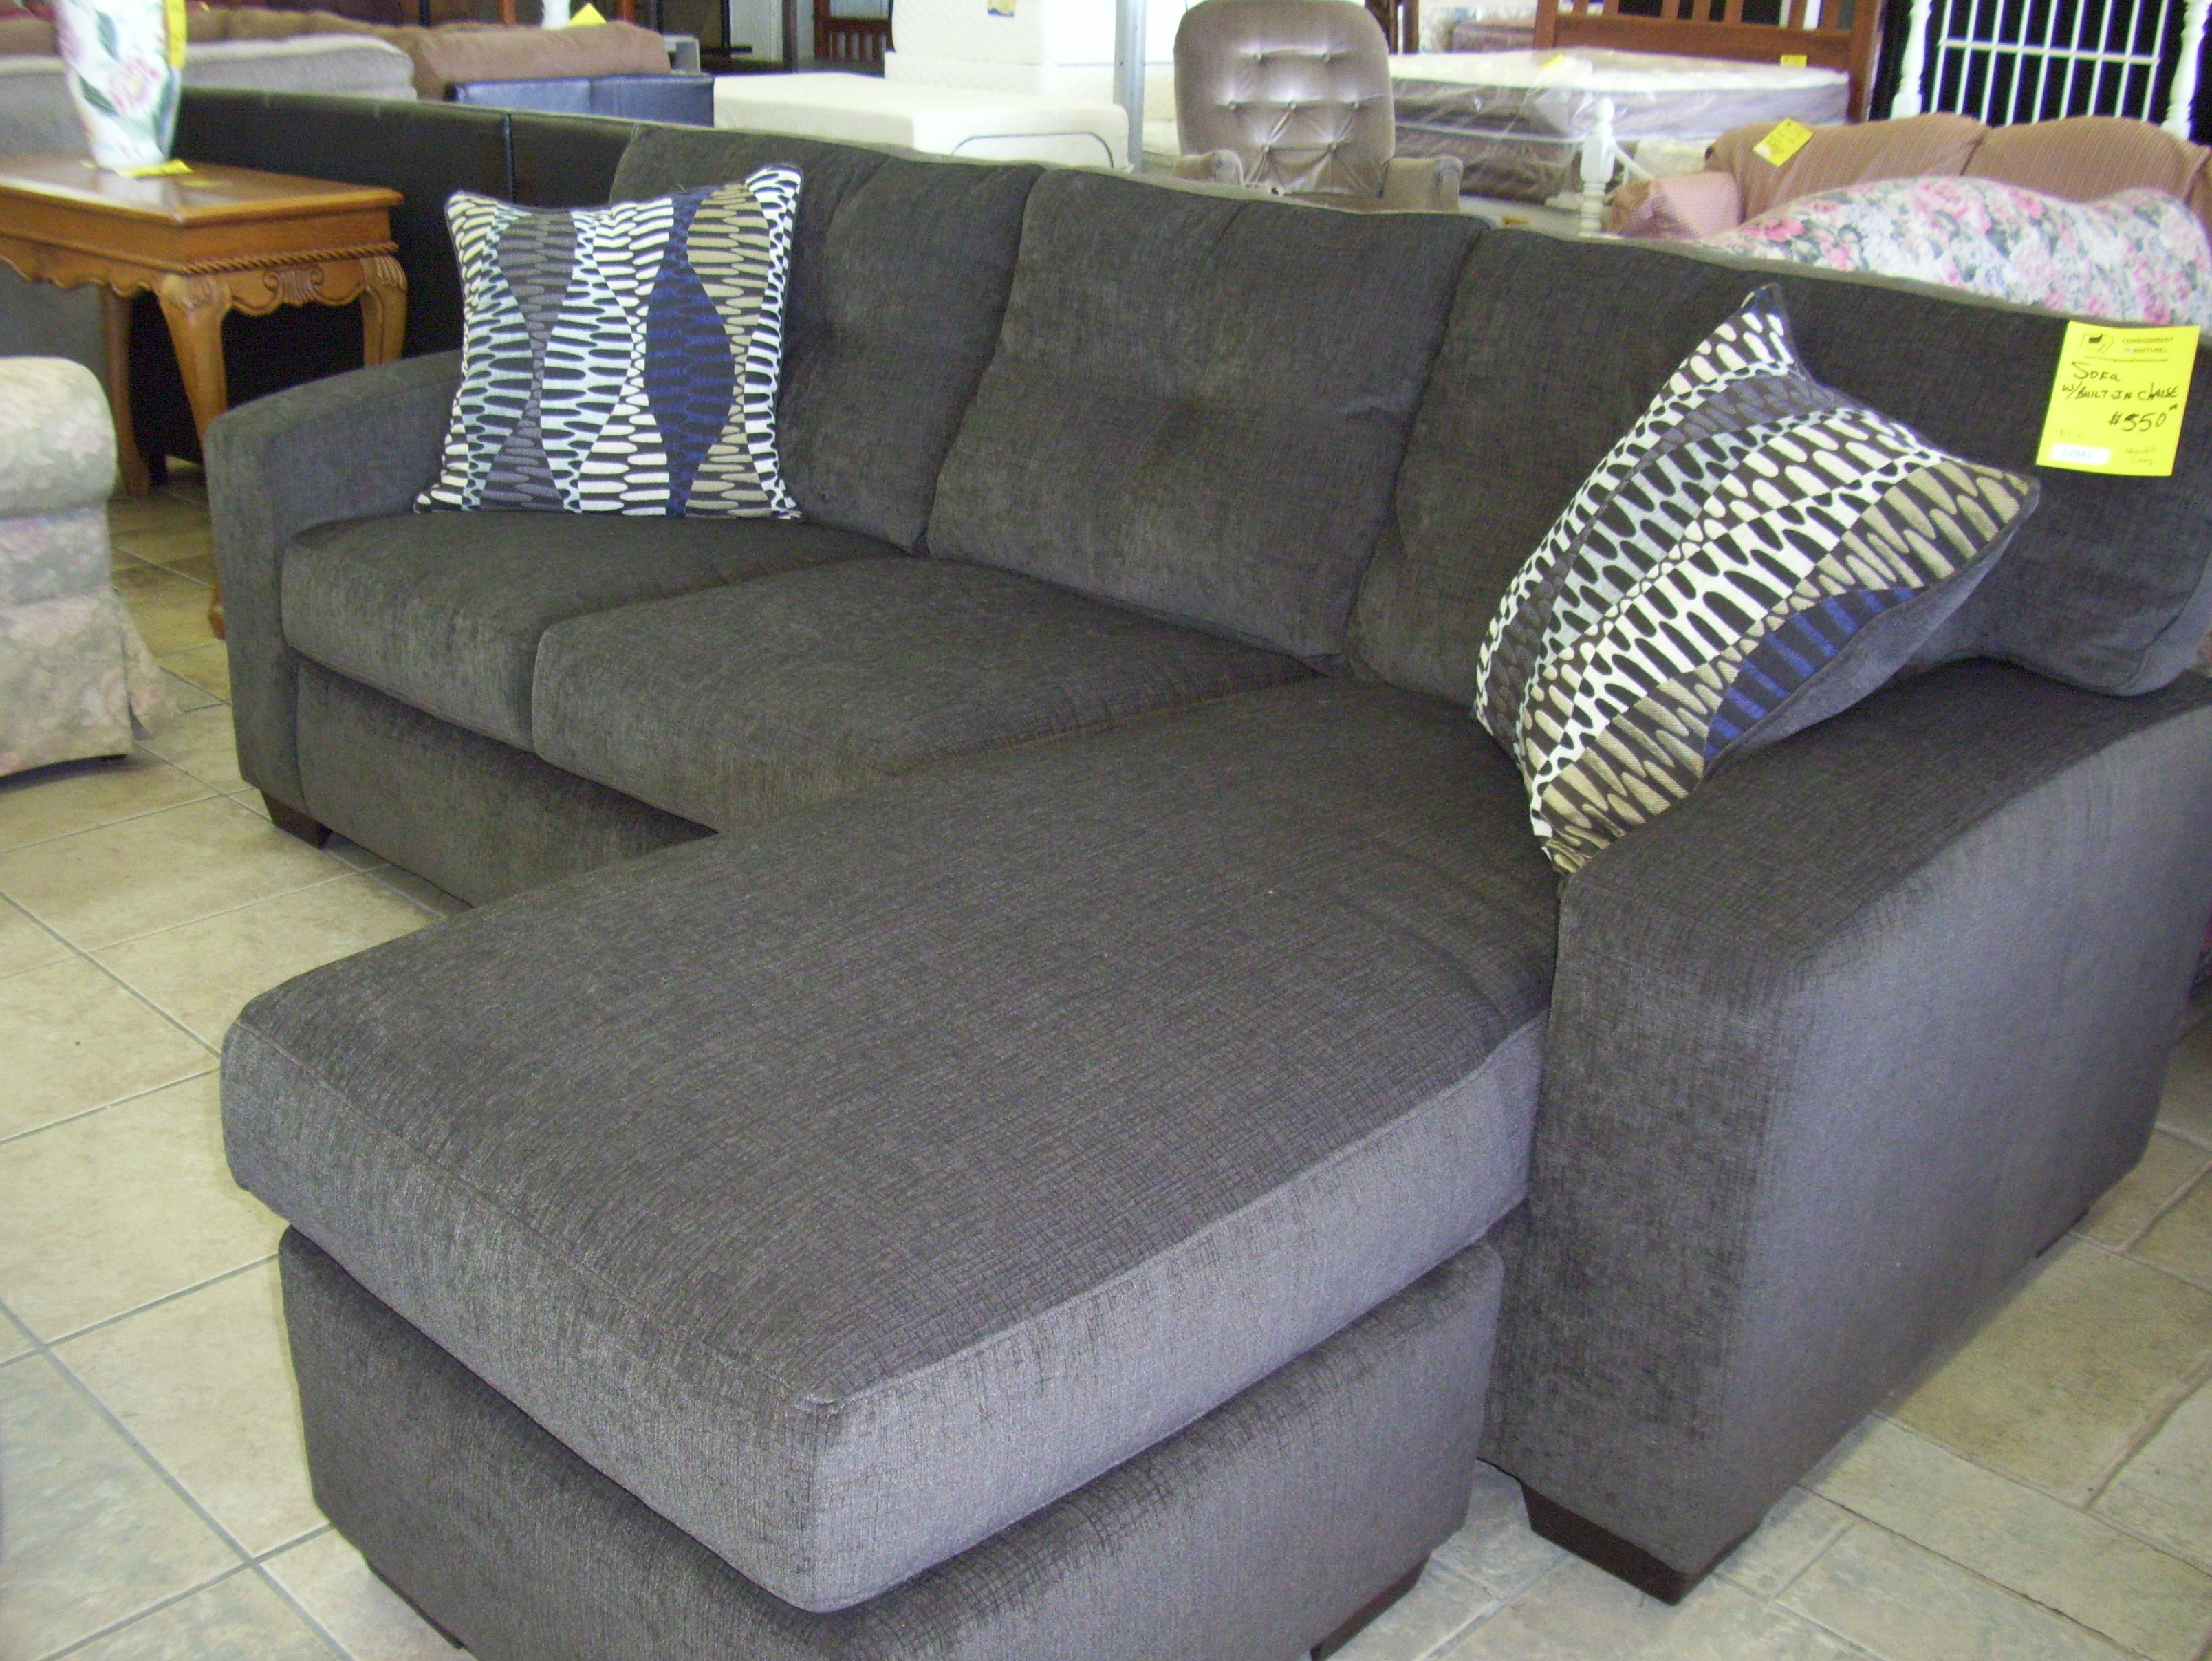 2018 Costco Chaise Lounges Throughout Costco Chaise Lounge – Costco Braeburn Chaise Lounge, Costco (View 8 of 15)